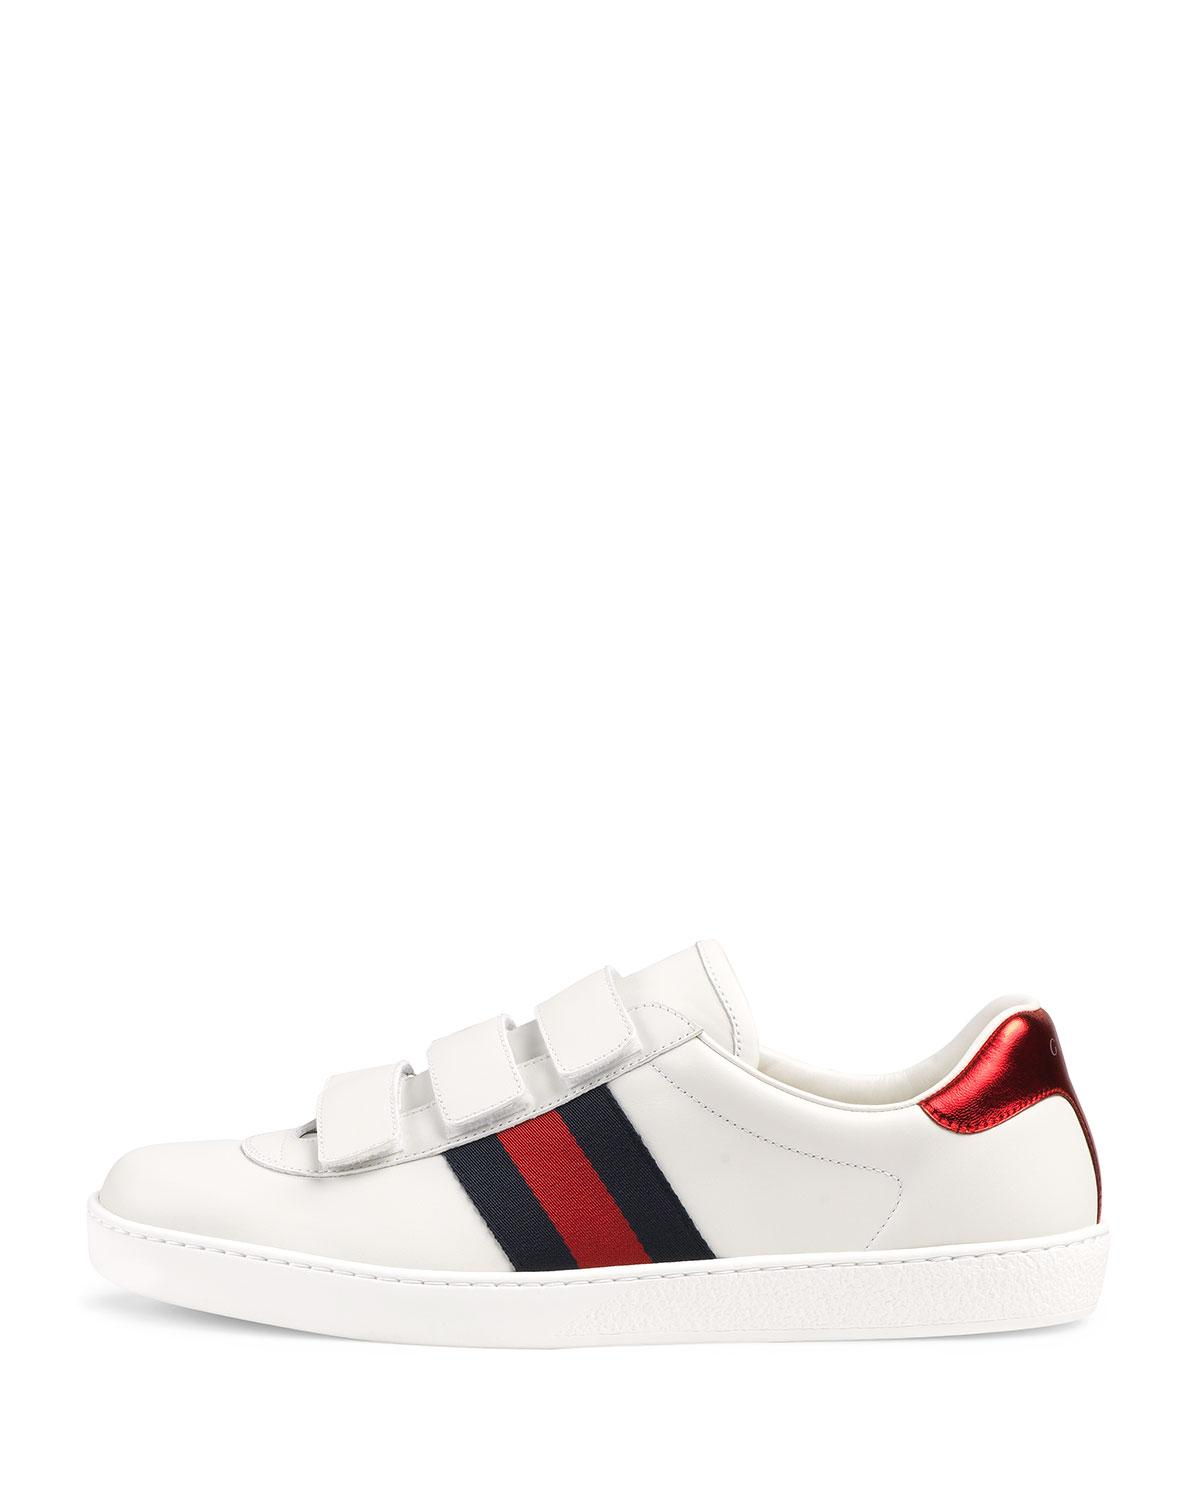 c2bc3fb997d Lyst - Gucci Men s Leather Grip-strap Sneakers With Web in White for Men